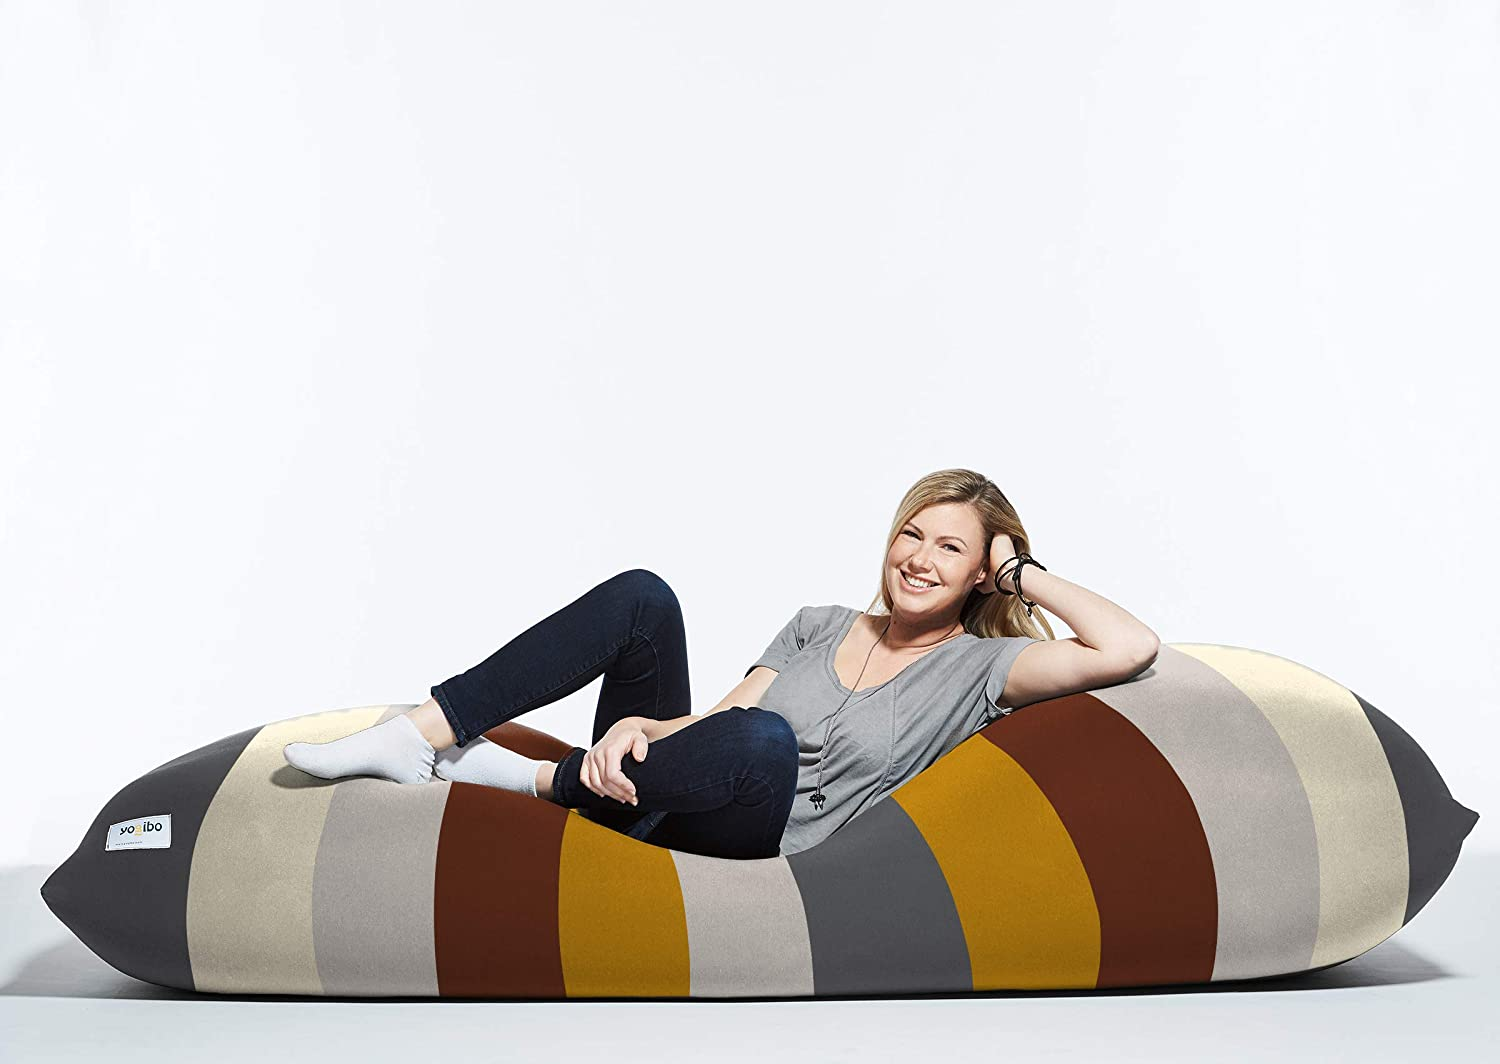 Yogibo Max 6-Foot Beanbag Chair, Bean Bag Couch with a Washable Outer Cover, Customer Favorite Cozy Sofa for Gaming, Reading, and Relaxing, Filled with Soft Micro-Beads, Rainbow Neutral